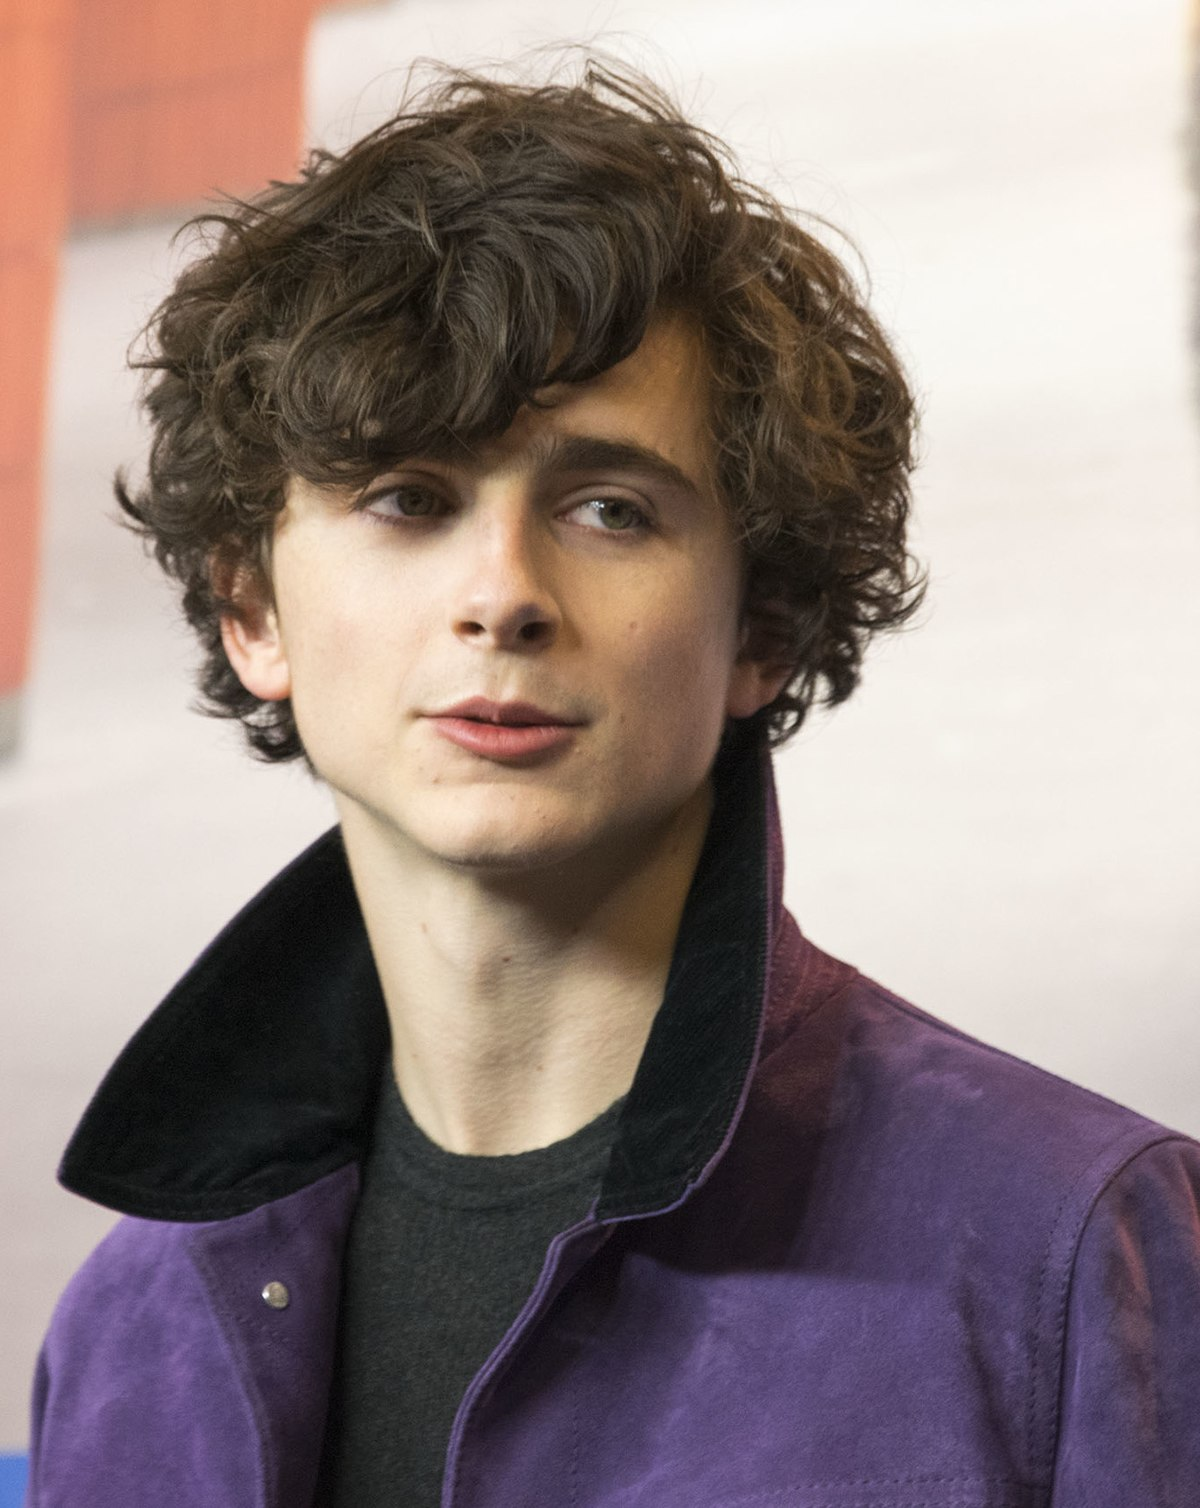 1200px Timoth%C3%A9e_Chalamet_at_Berlinale_2017_%28cropped%29